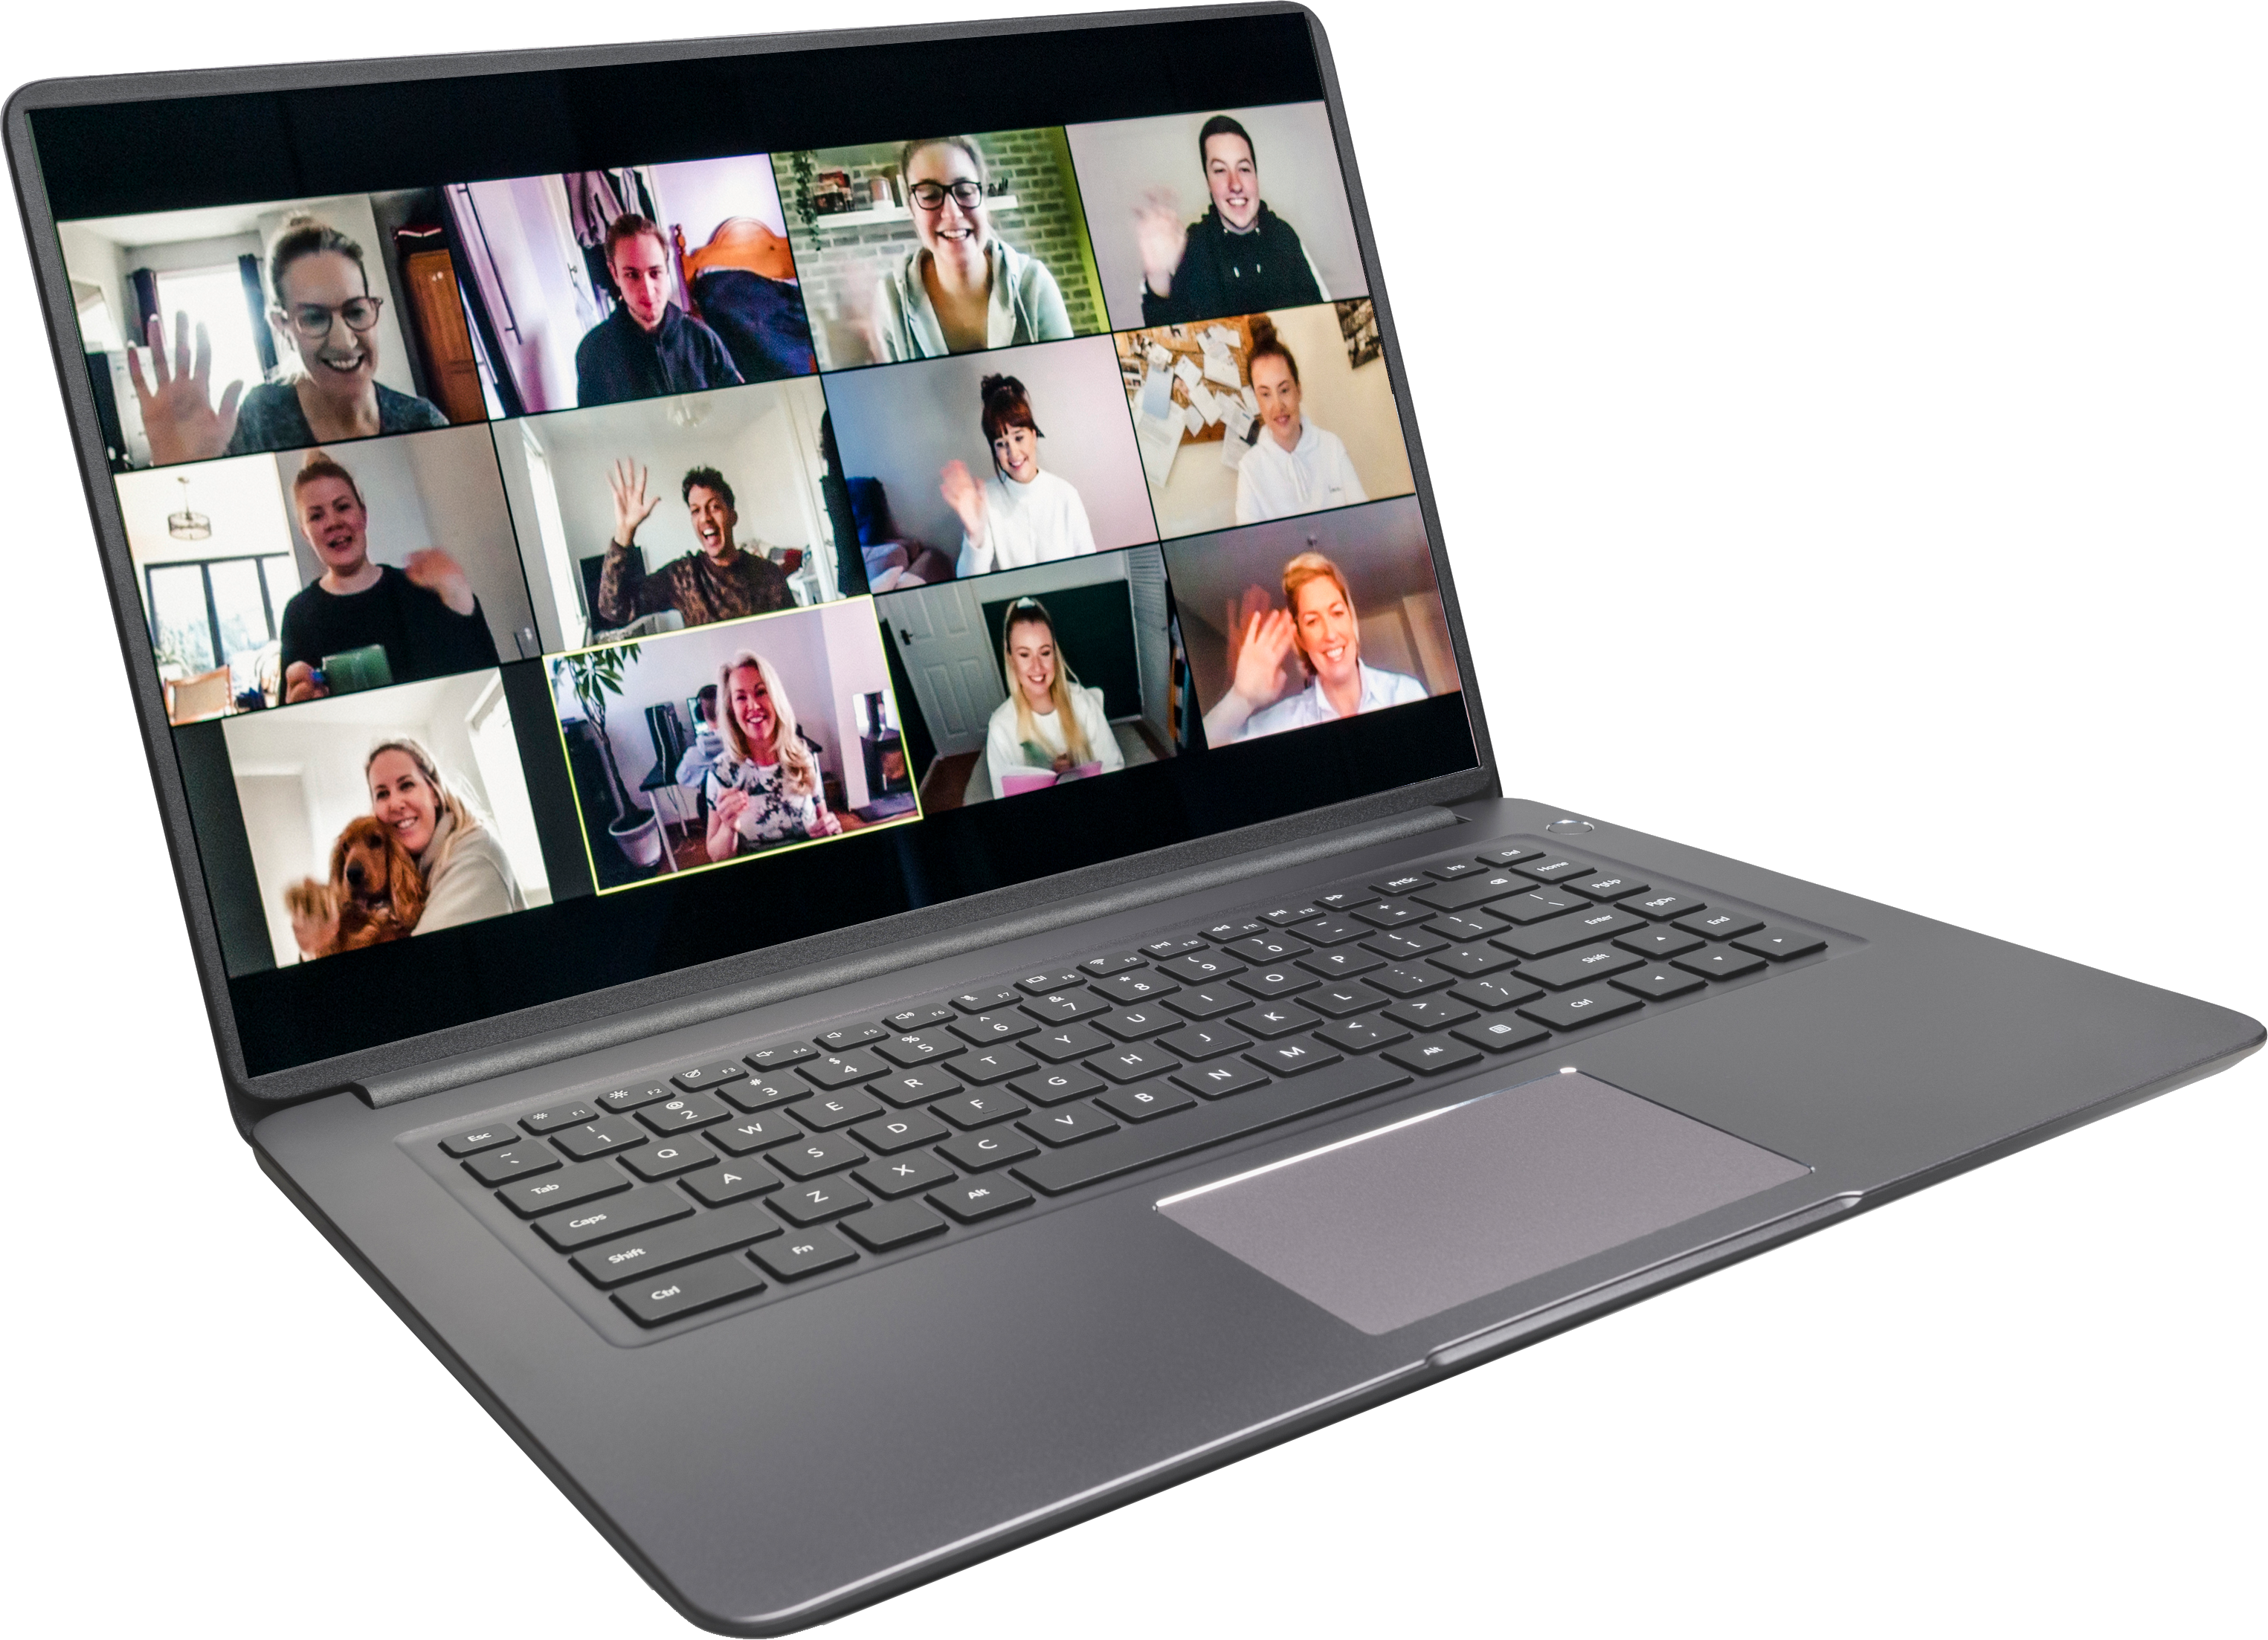 Laptop running a Zoom web conferencing meeting.